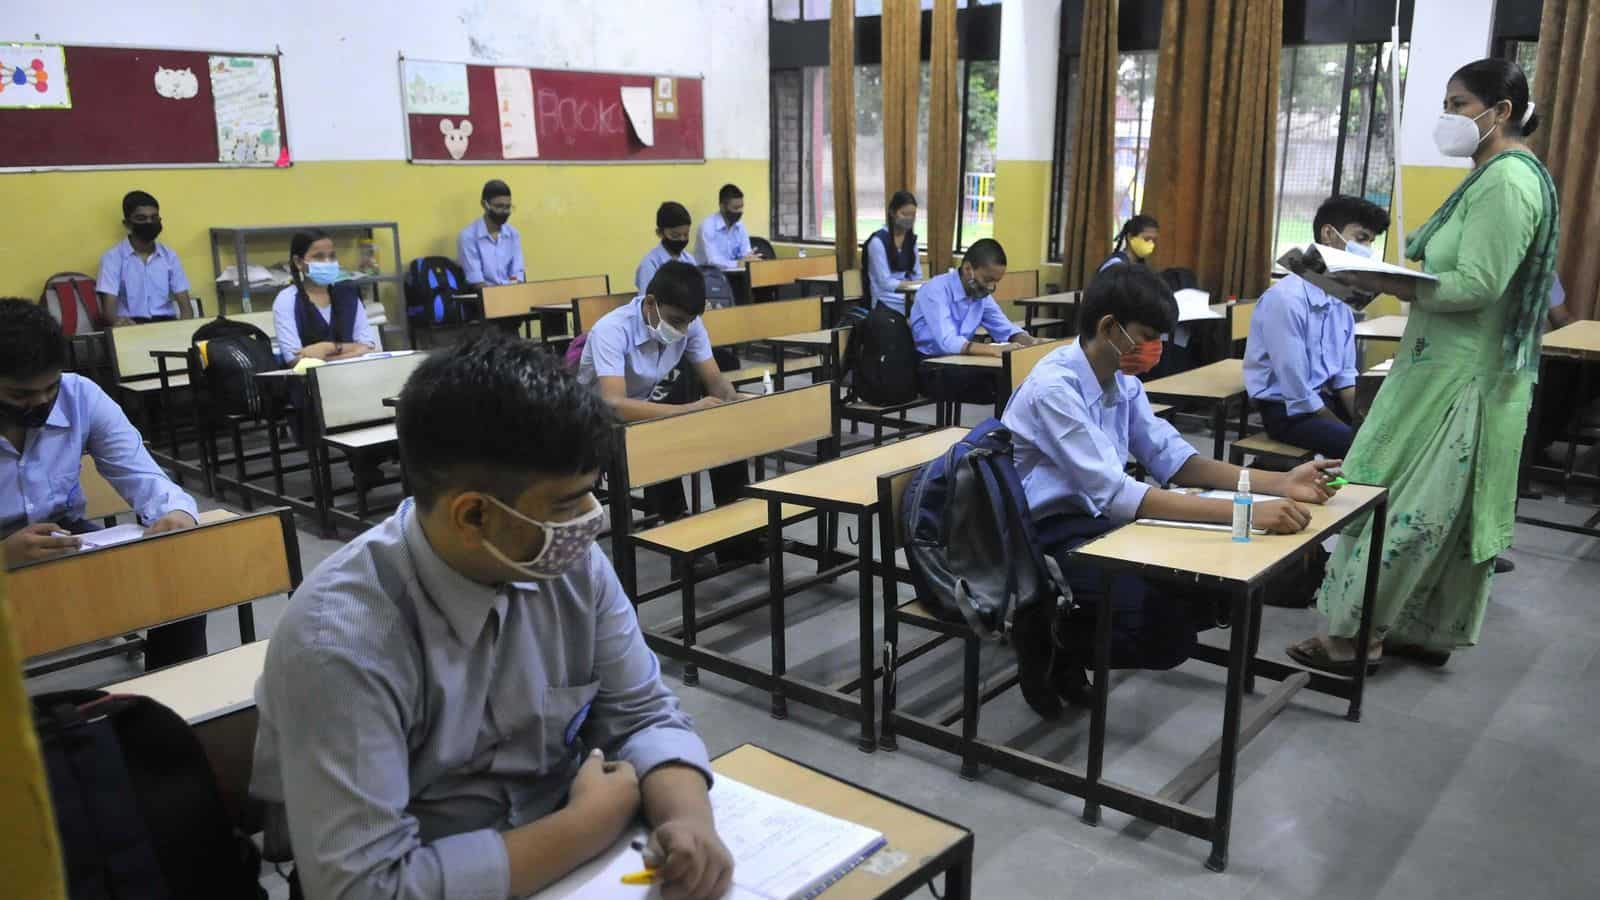 The class divide that threatens to thwart our educational goals